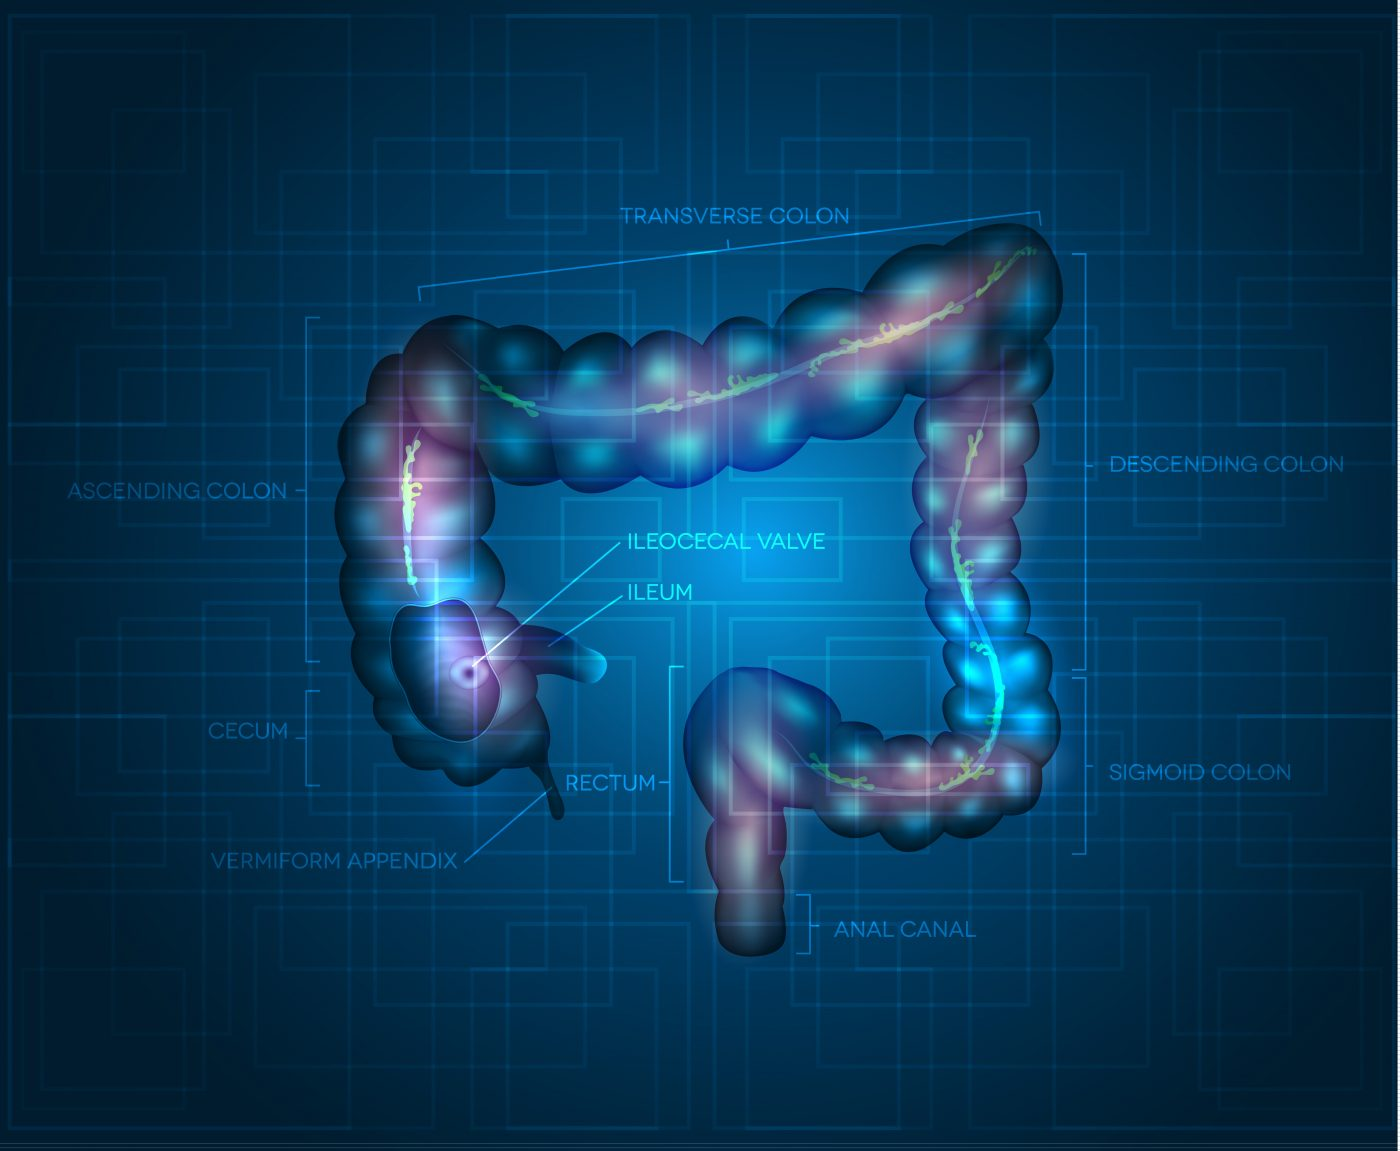 Frisbie Memorial Hospital Offers Virtual Colonoscopy For Colorectal Cancer Screening